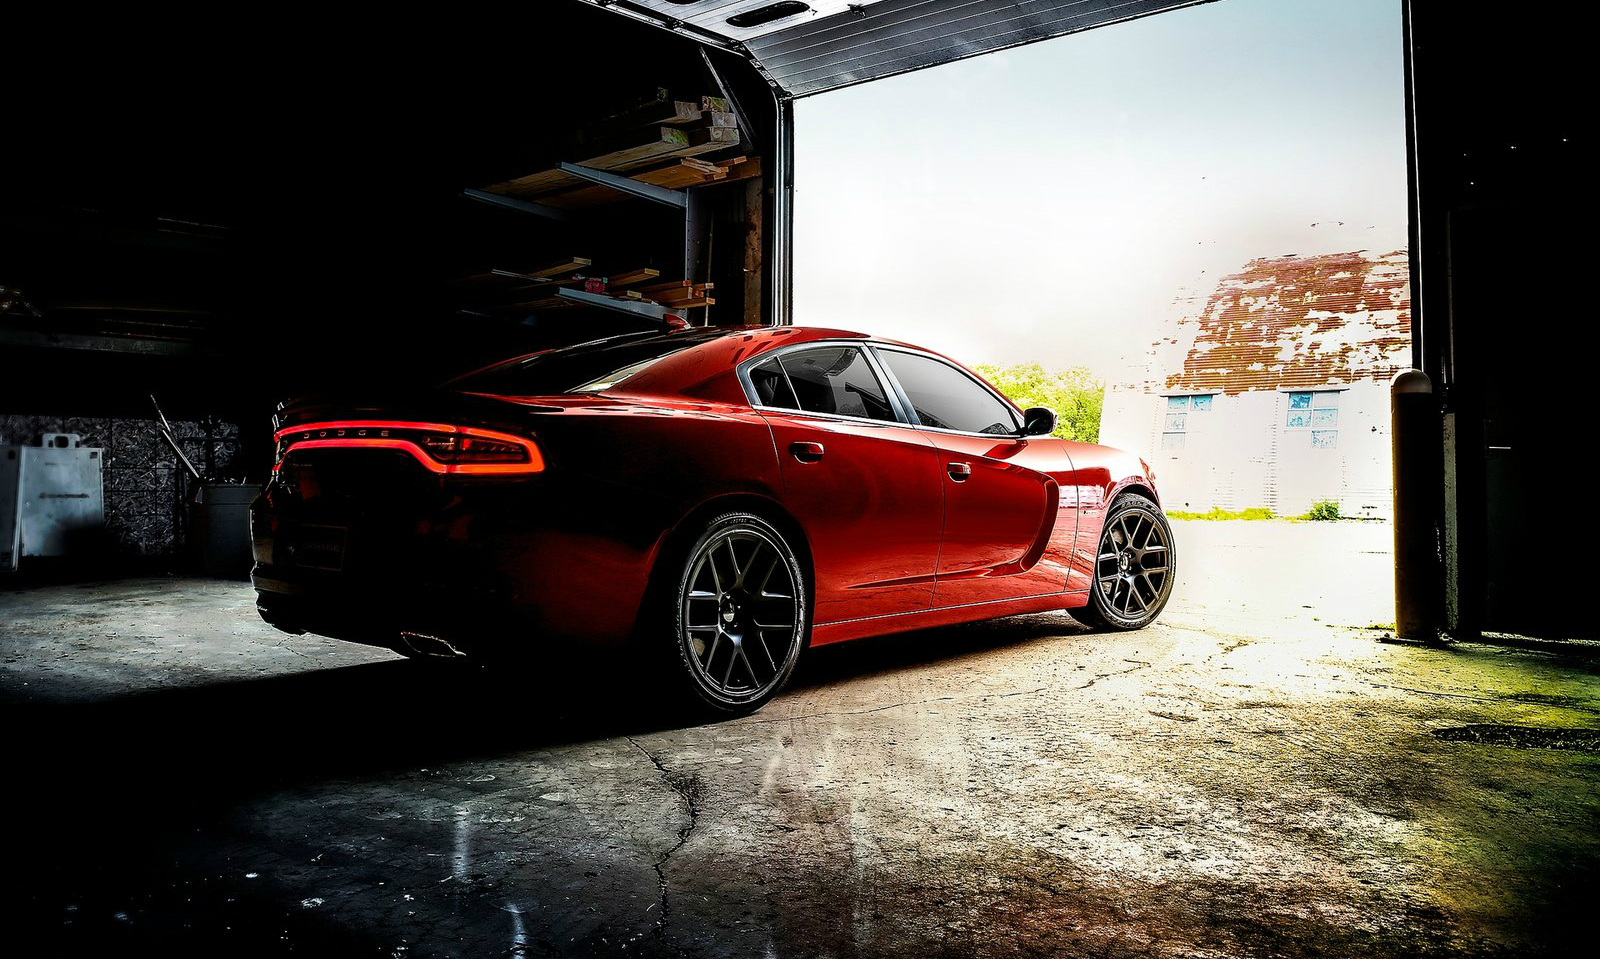 Dodge Charger Customer Gets the Wrong Car Delivered, It's